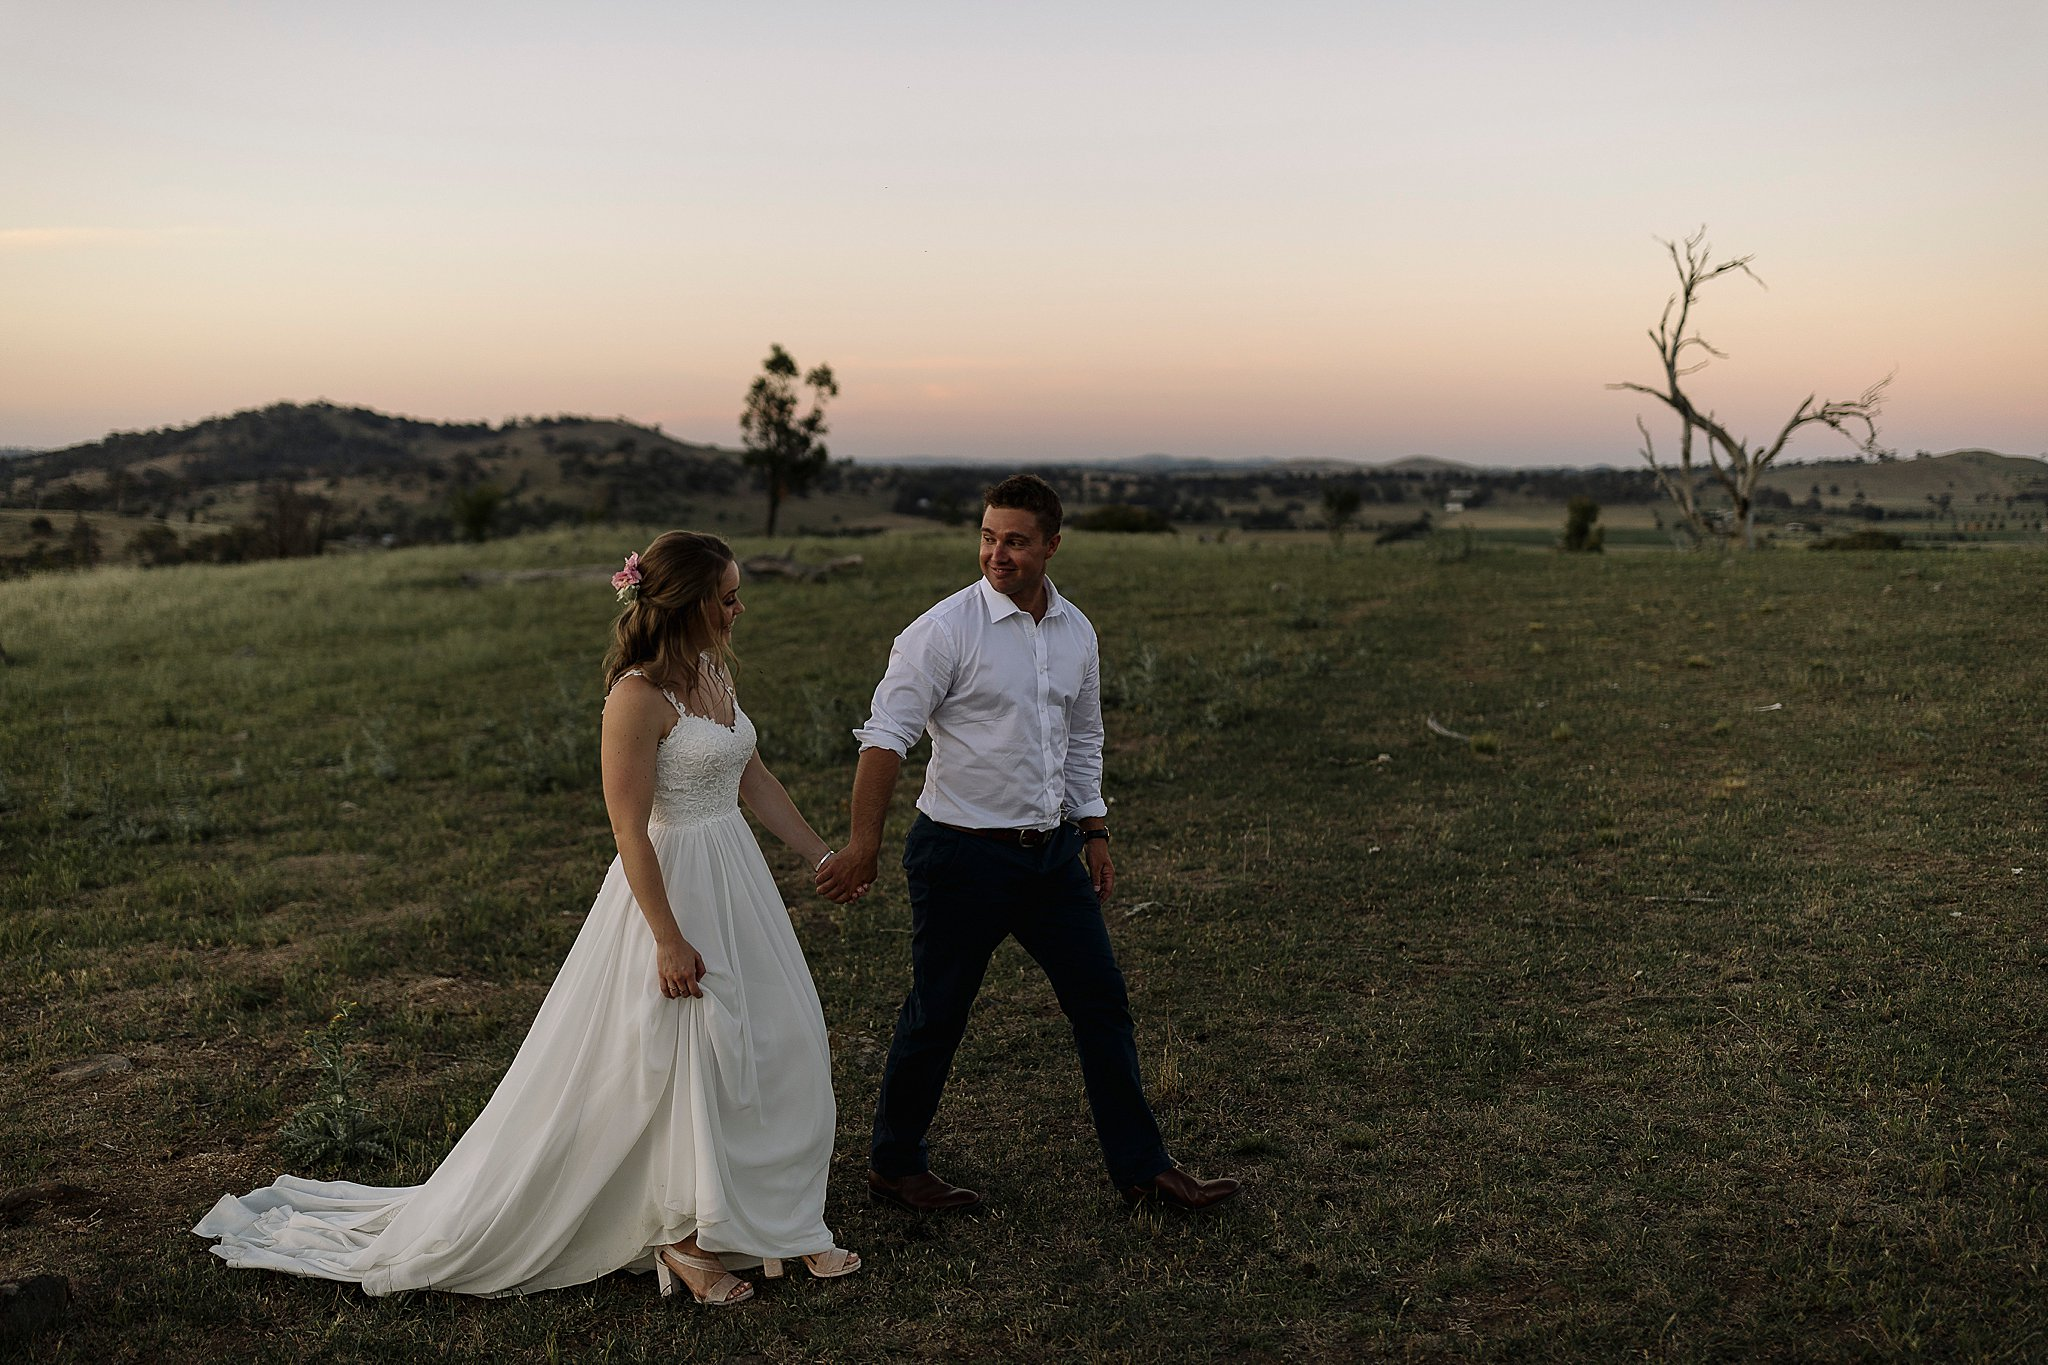 Canberra Portrait Photography,country wedding,Wedding,destination wedding photography,destination wedding,Poachers pantry,Poachers Pantry wedding,canberra wedding,Canberra Wedding Photographer,Canberra Wedding Photography,canberra weddings,Keepsakephoto by the Keeffes,Summer wedding,